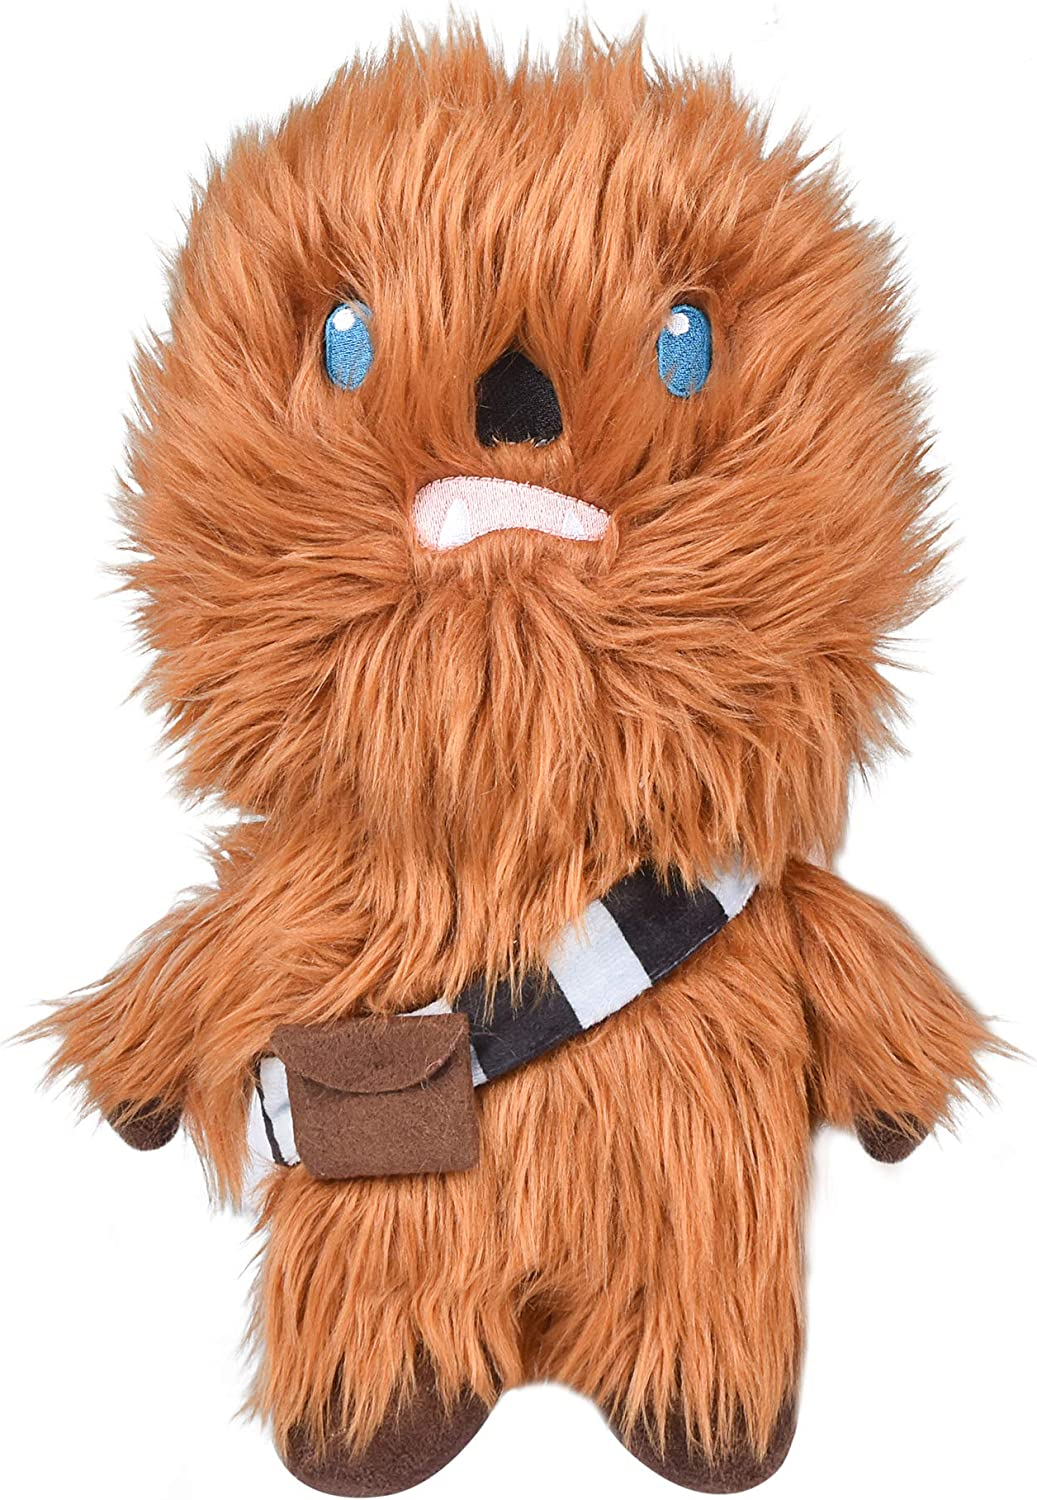 Star Wars for Pets Plush Chewbacca Dog Toy | Soft Figure Toys for Dogs, 12 Inches